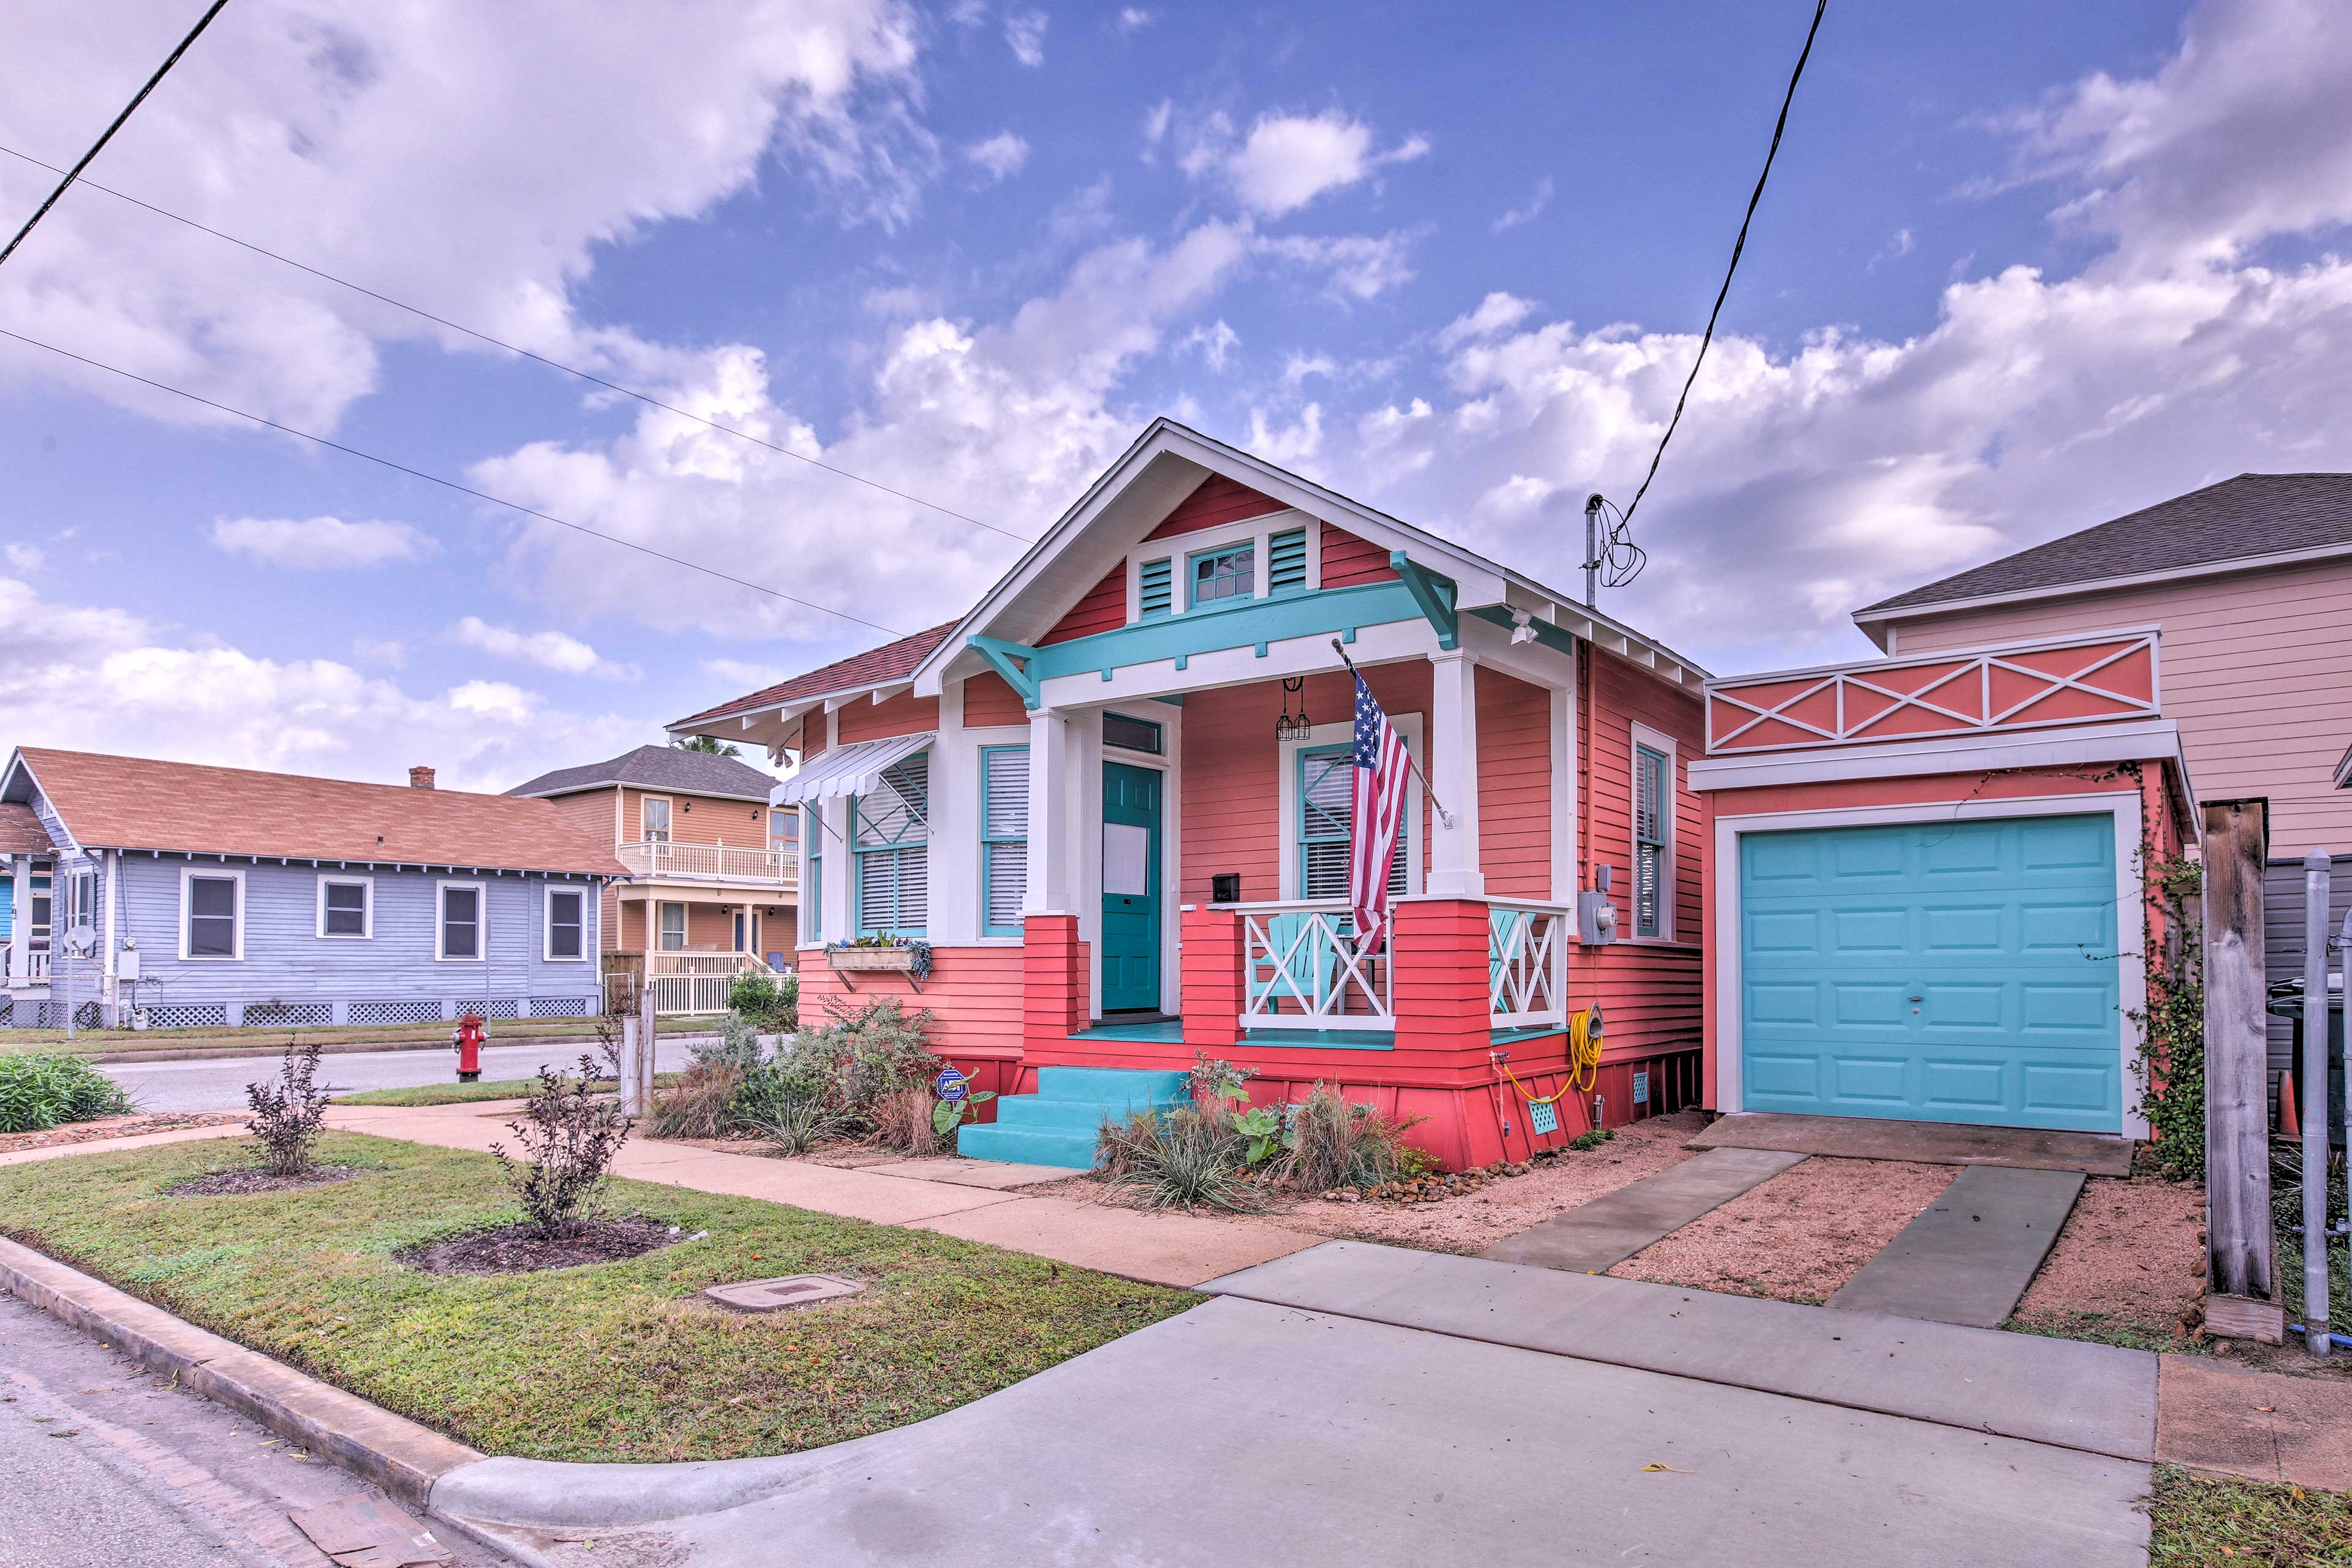 Enjoy a fun-filled beach vacation with loved ones at this home in Galveston!